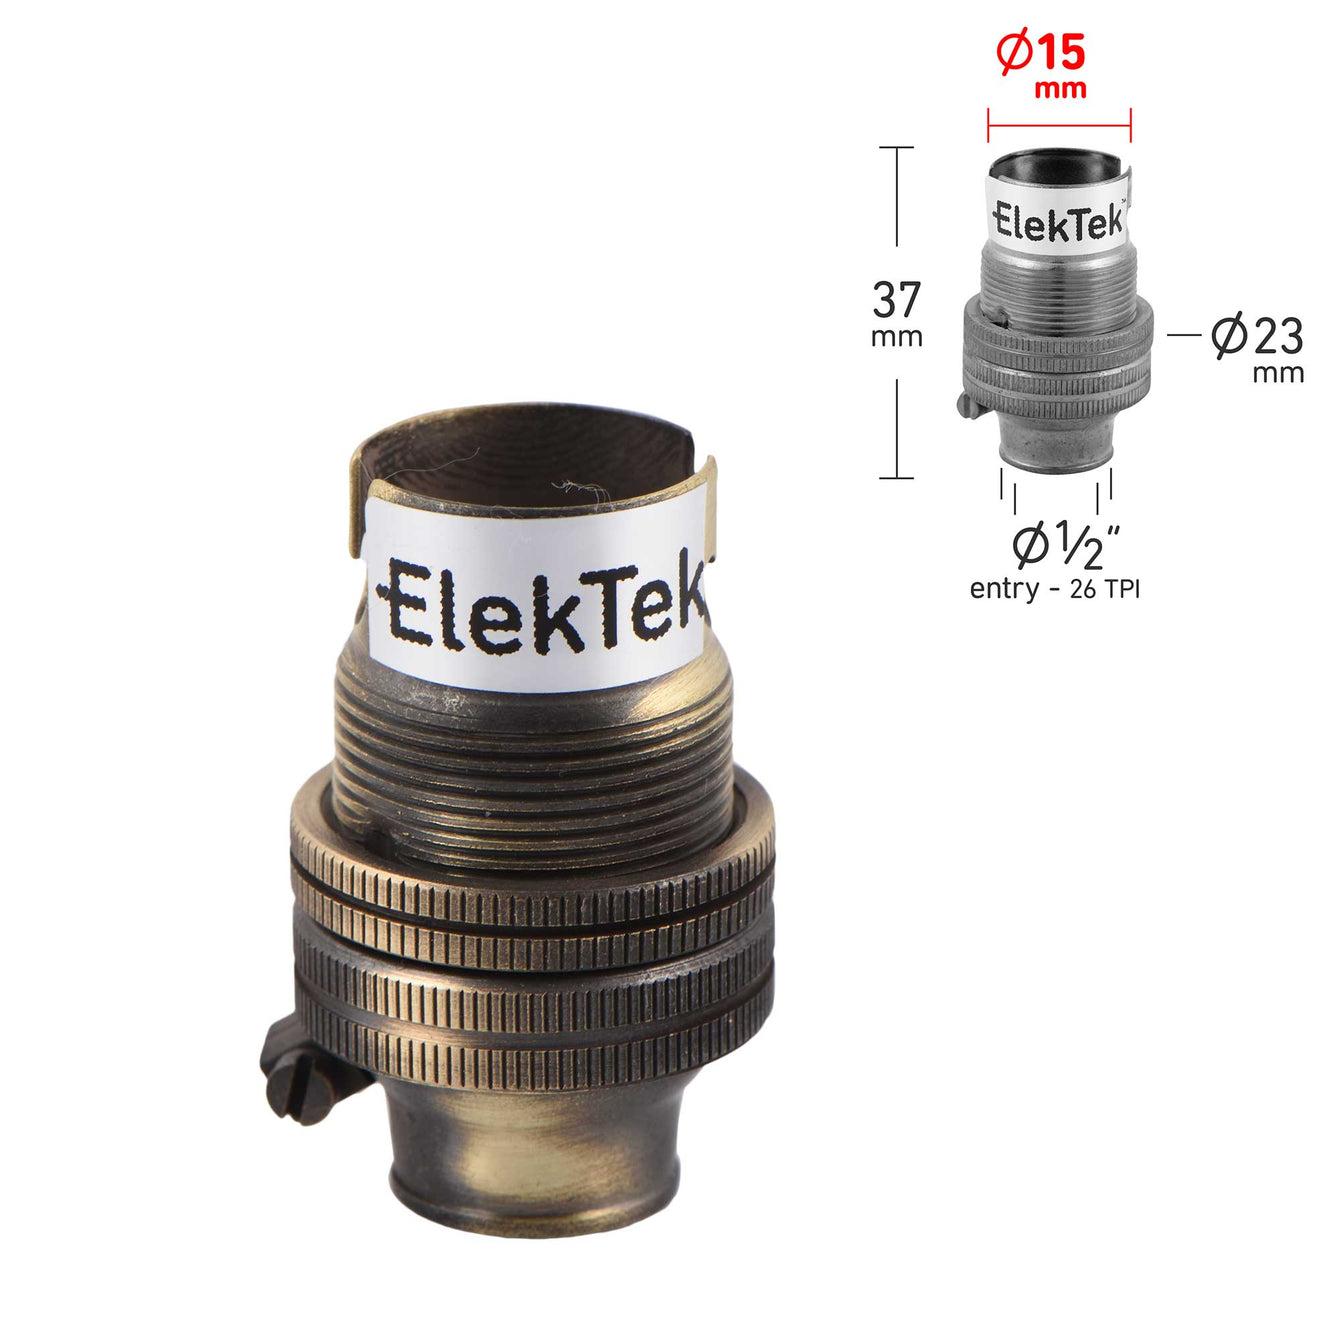 ElekTek Lamp Holder 10mm or Half Inch Entry Miniature Small Bayonet Cap SBC B15 With Shade Ring Solid Brass - Buy It Better Nickel / Half Inch